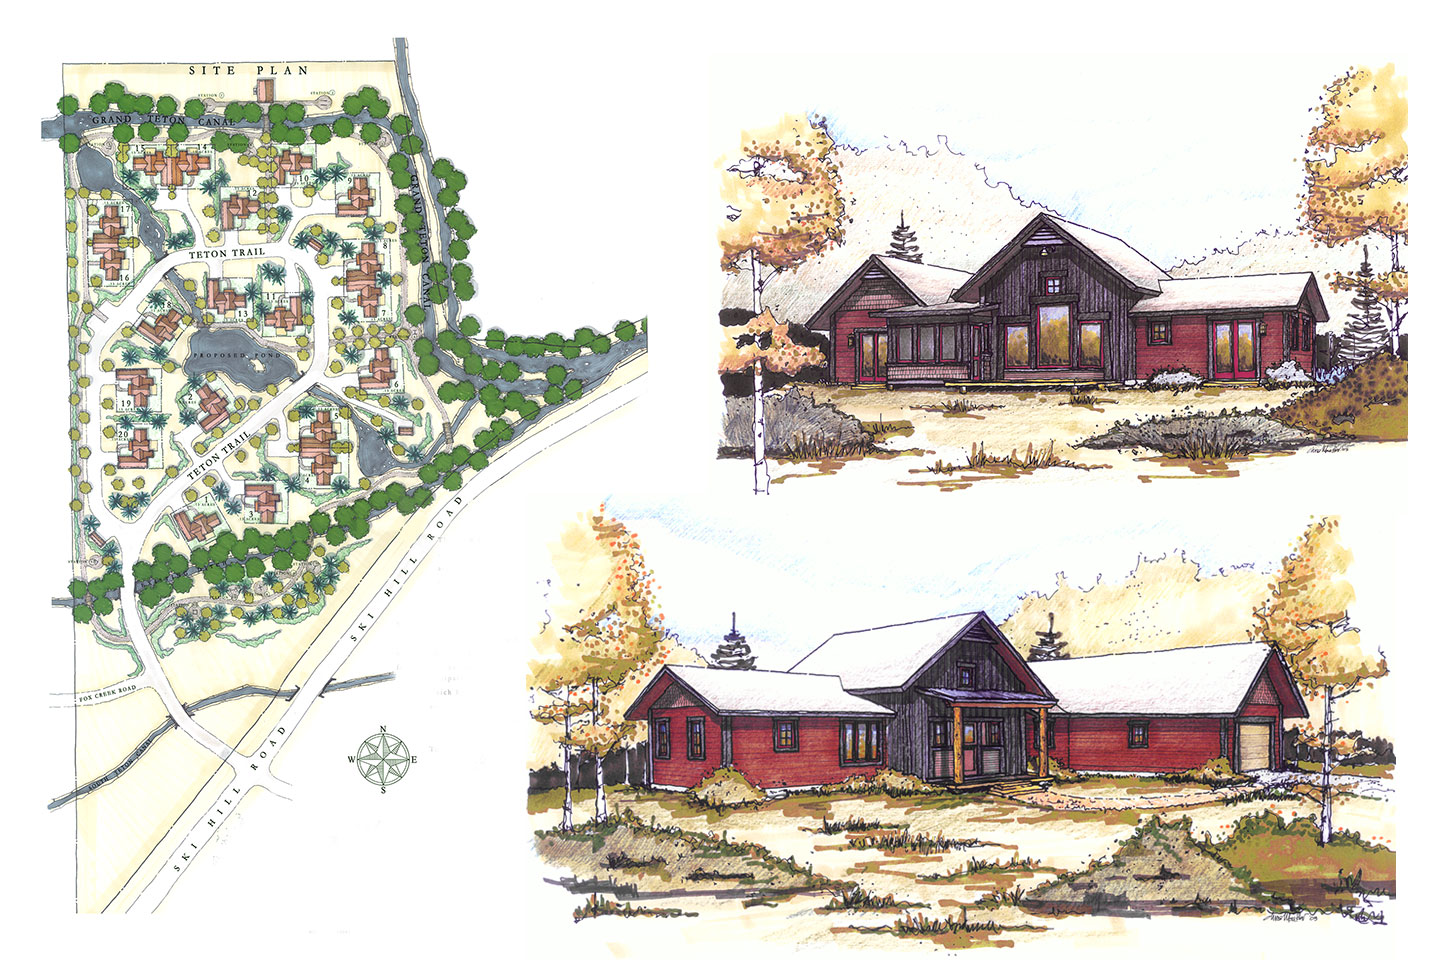 Master plan view and two sketches